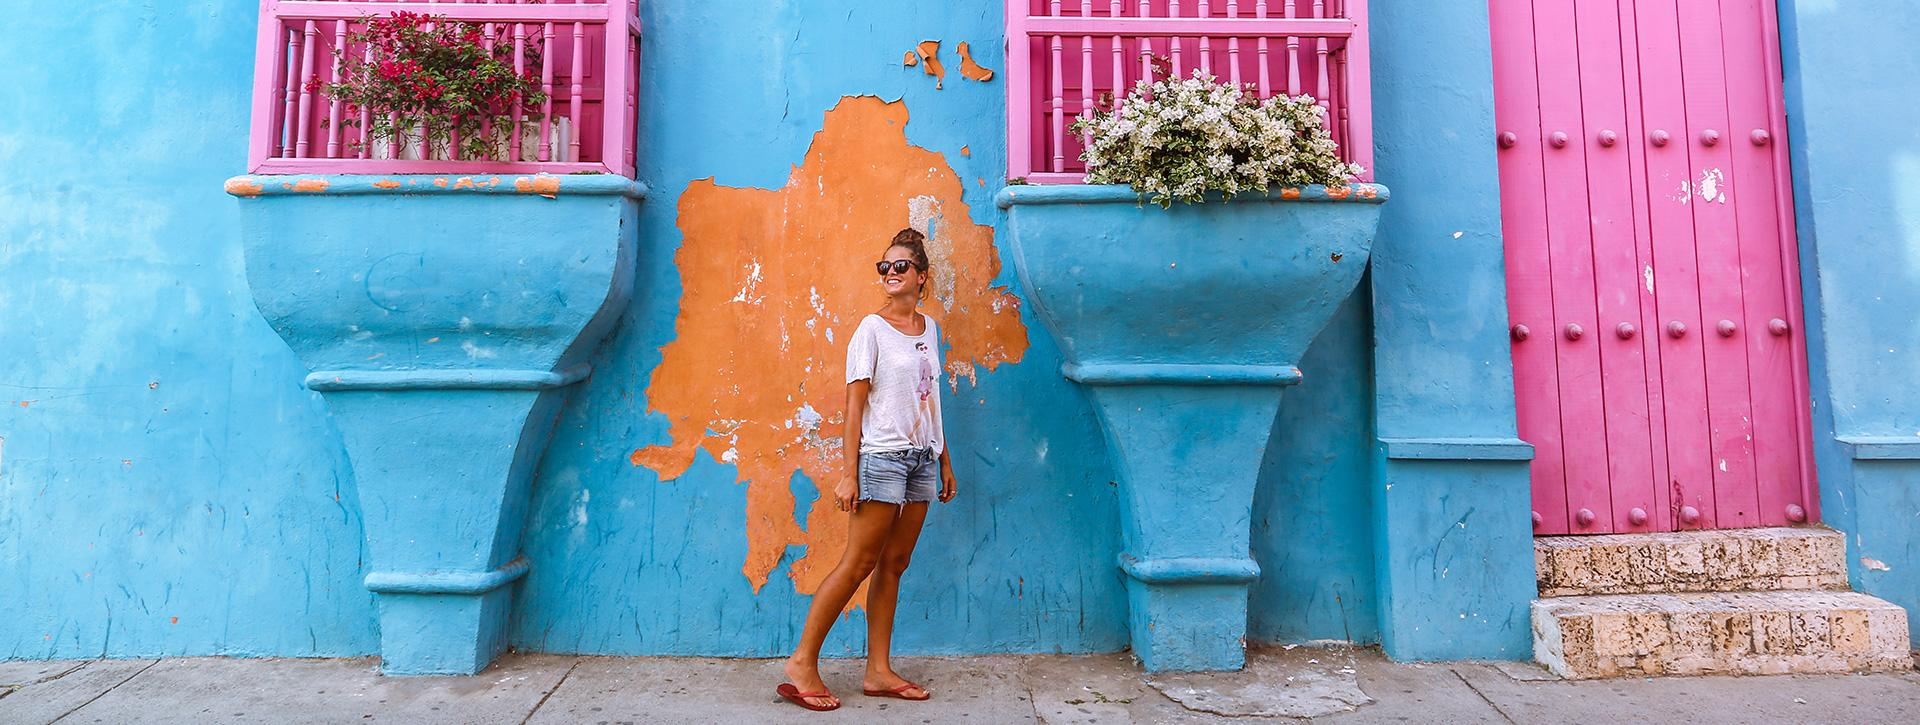 Cartagena, Colombia - Top 2020 Travel Destinations